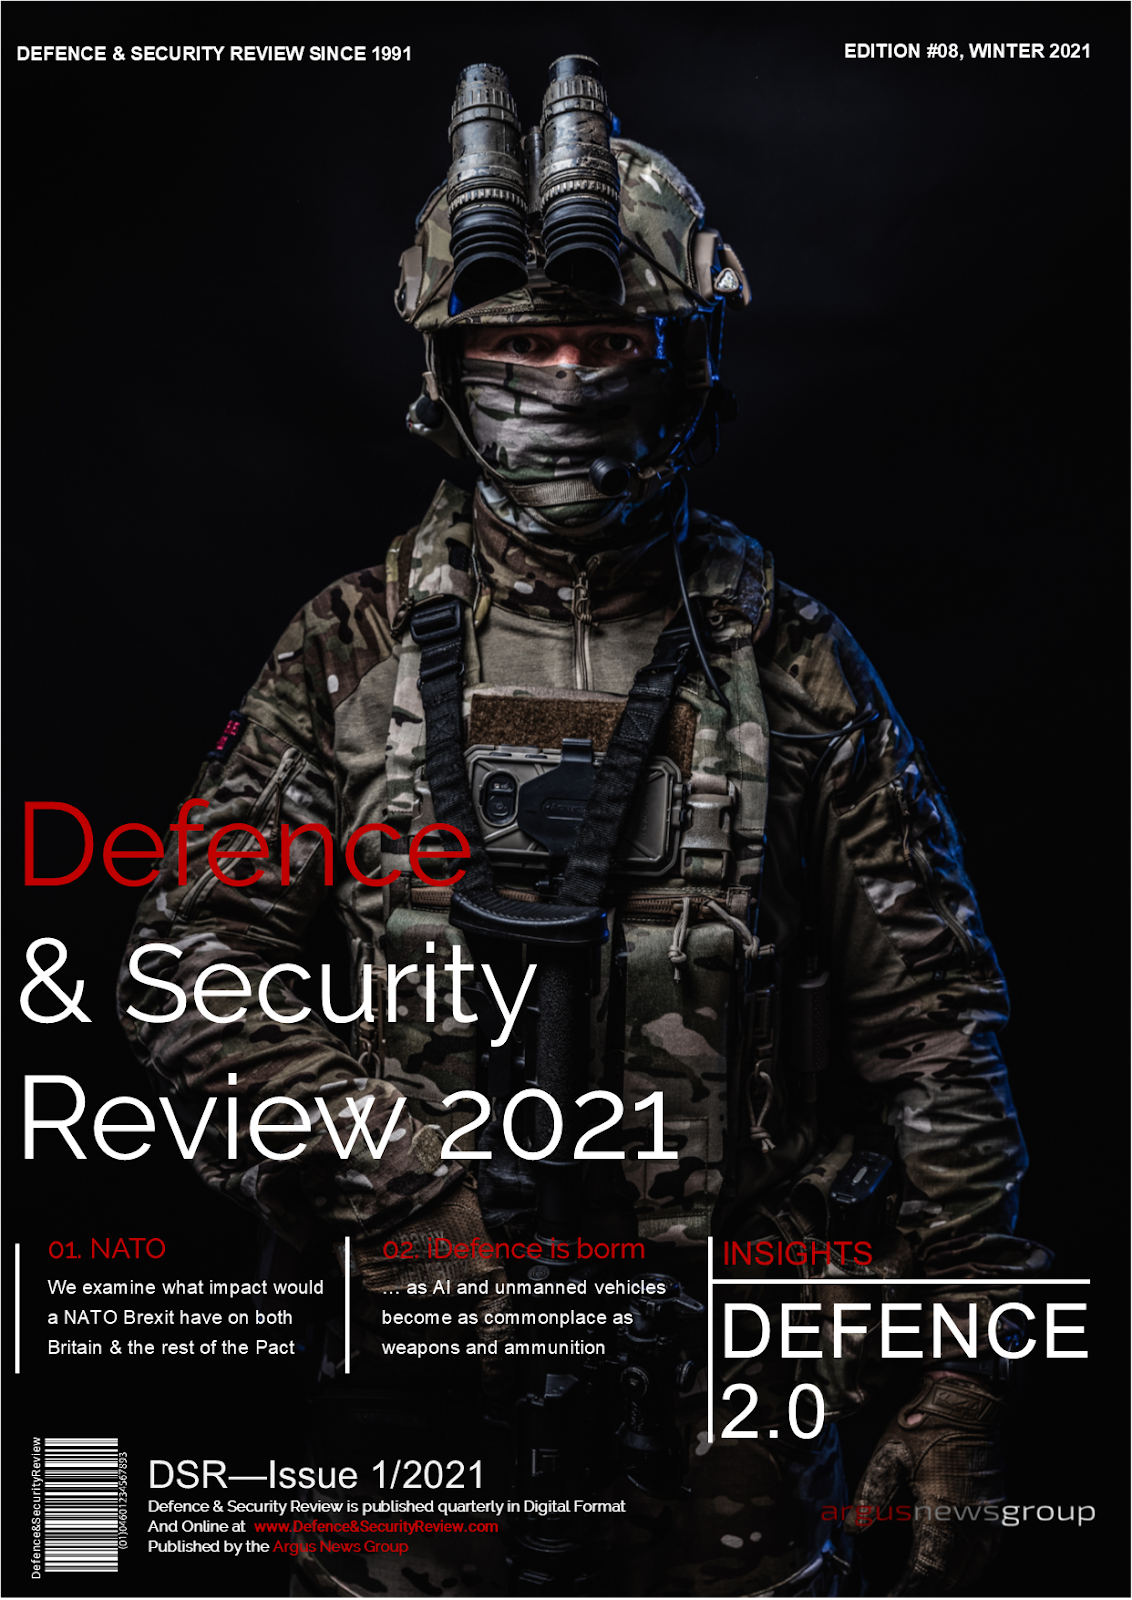 DSR DIGITAL NEXT EDITION 1/2021